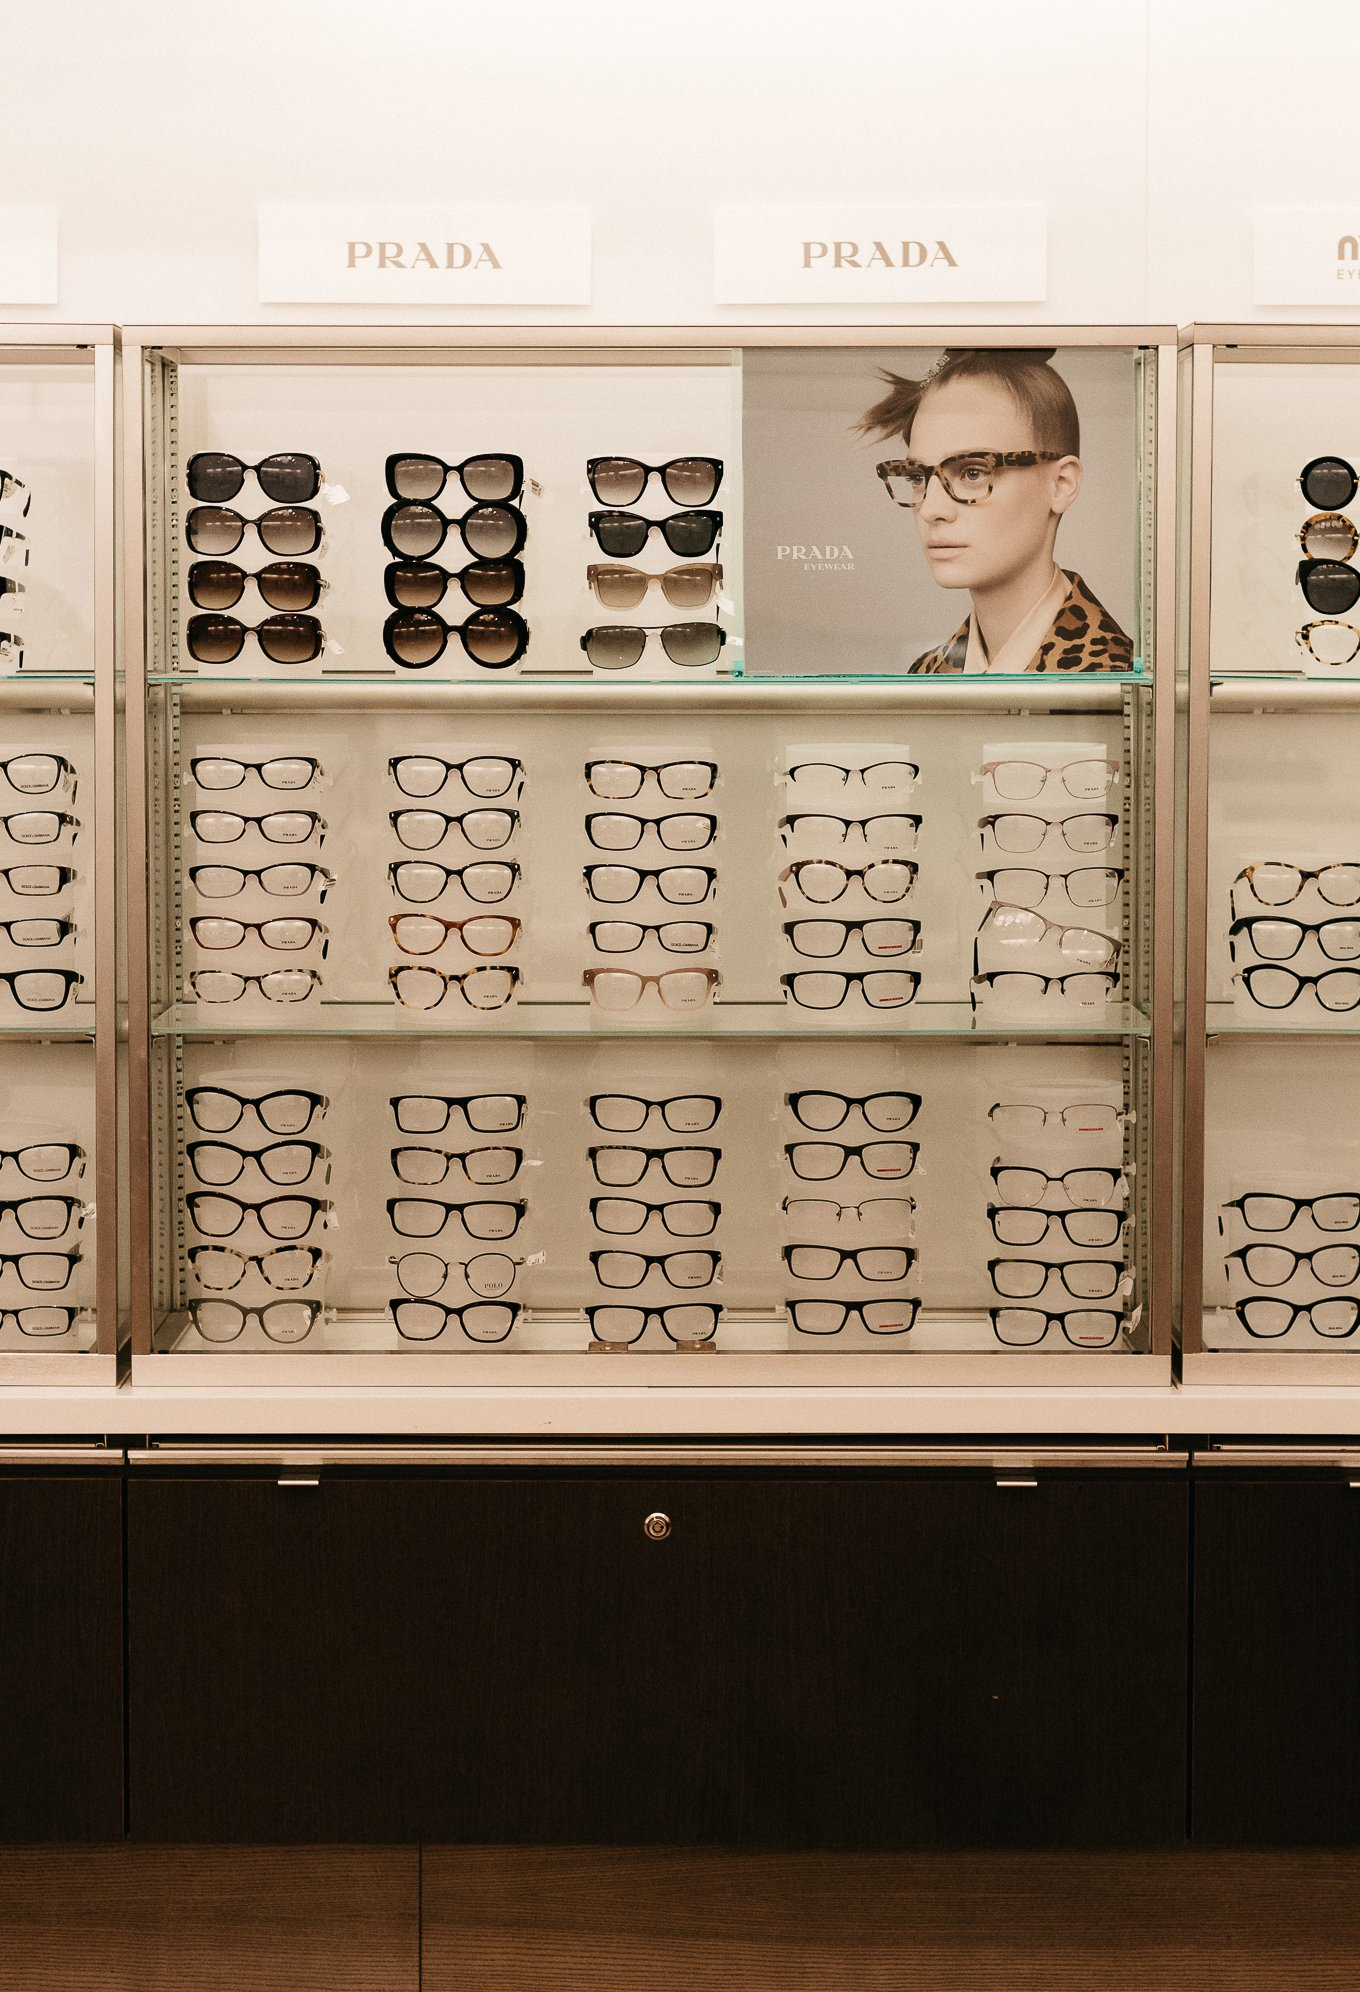 lenscrafters ray ban frames